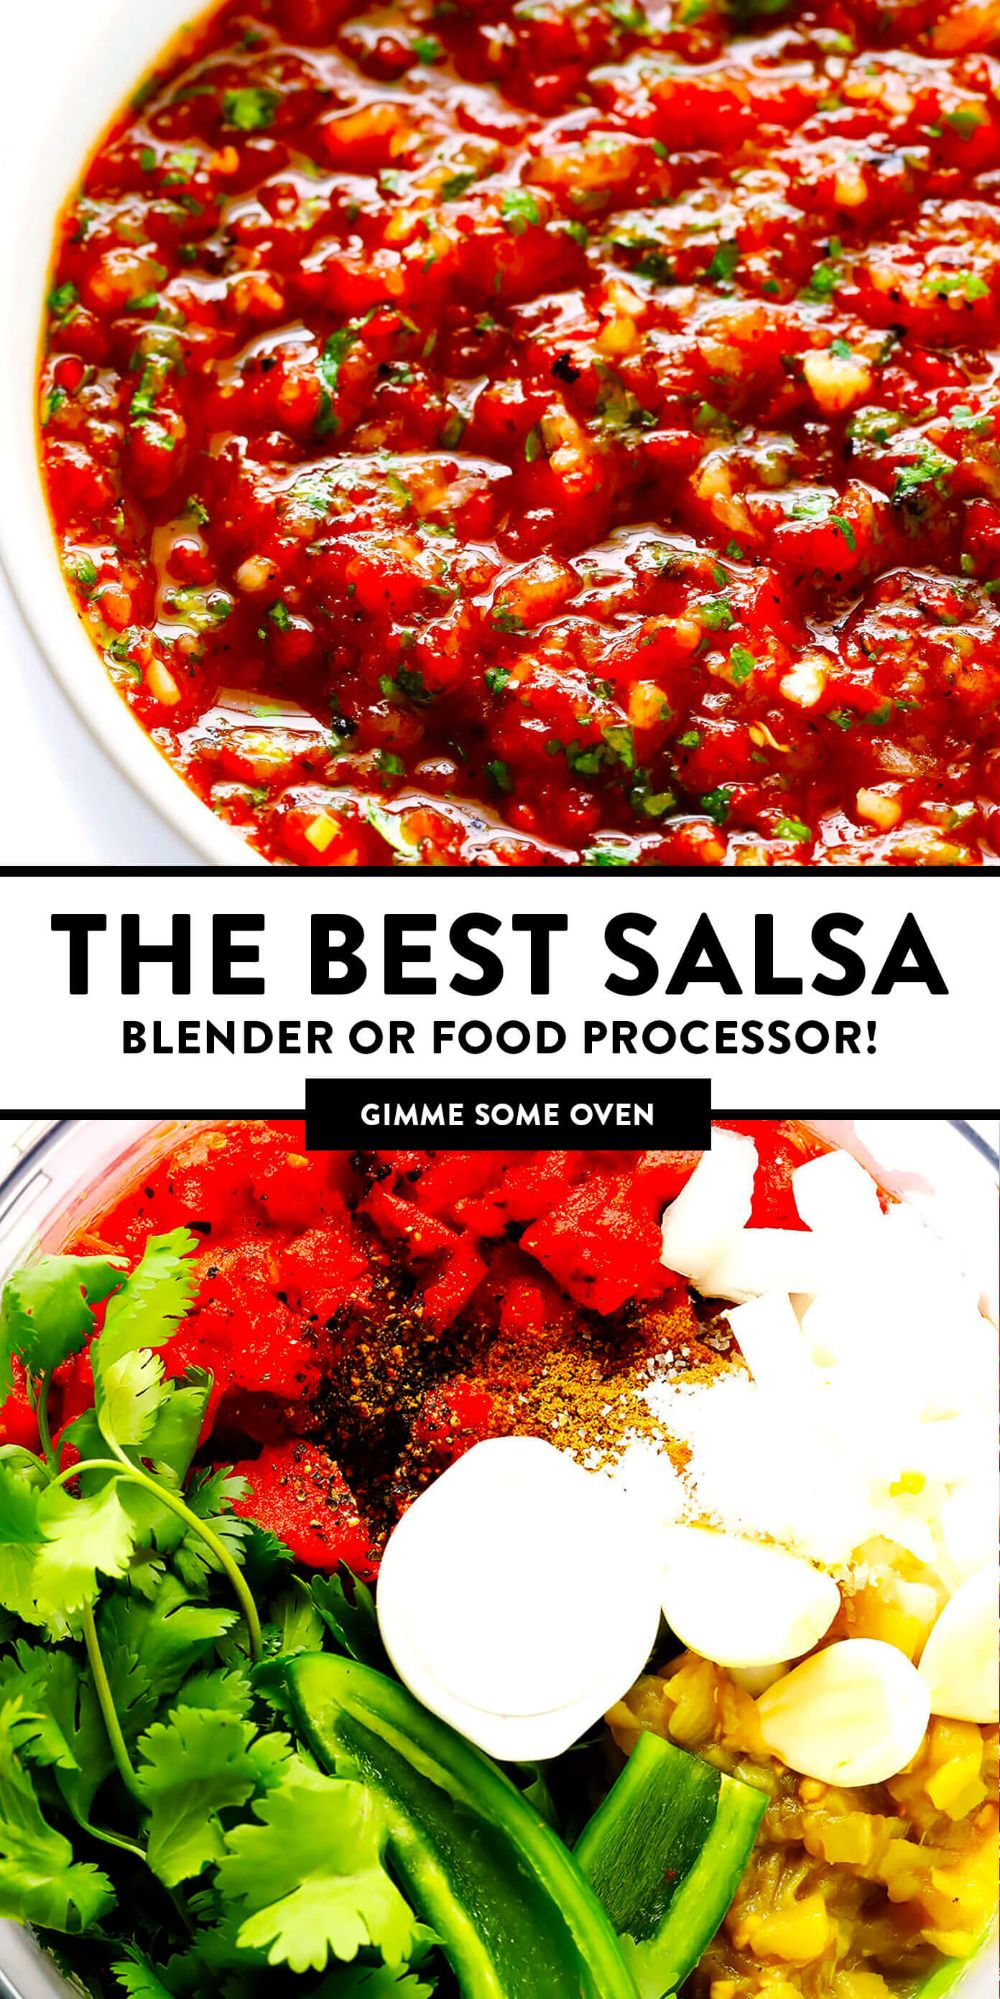 My all-time favorite homemade salsa recipe!! It's quick and easy to make in a food processor or blender, it's easy to make spicy or mild, and it is SO flavorful and delicious! | Gimme Some Oven #salsa #appetizer #dip #mexican #glutenfree #vegetarian #vegan #sauce #tomato